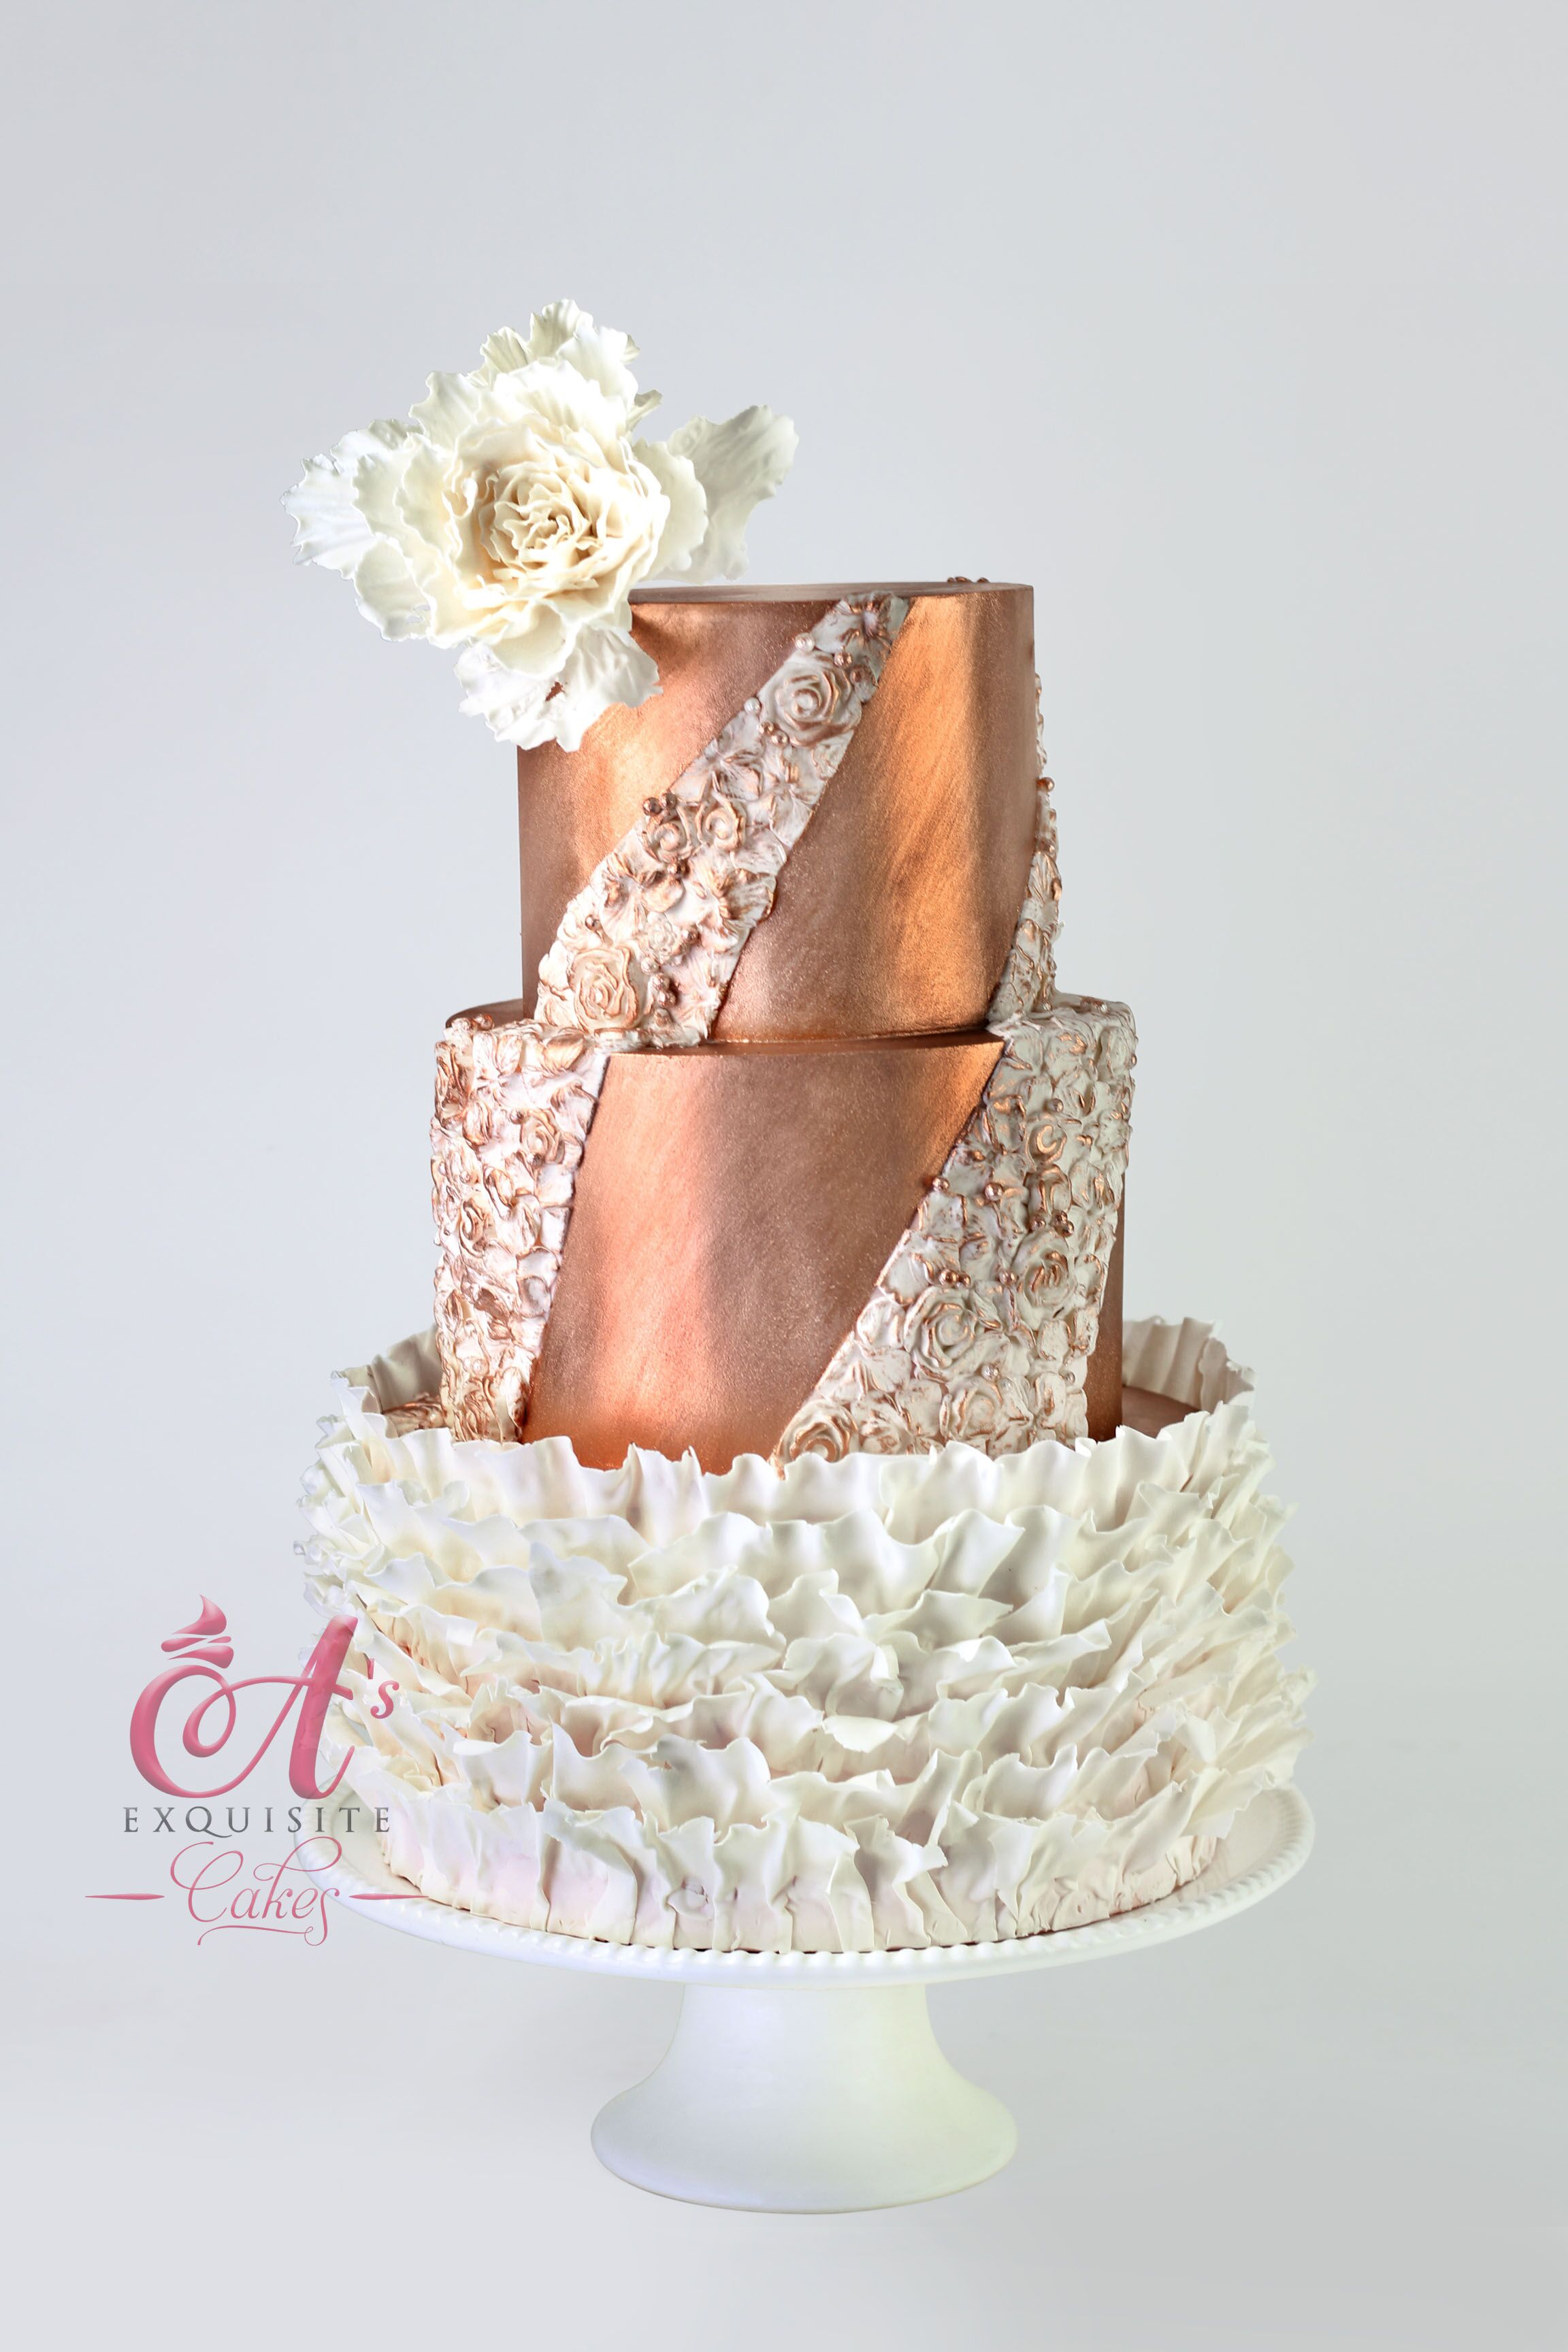 As Exquisite Cakes Brooklyn Ny